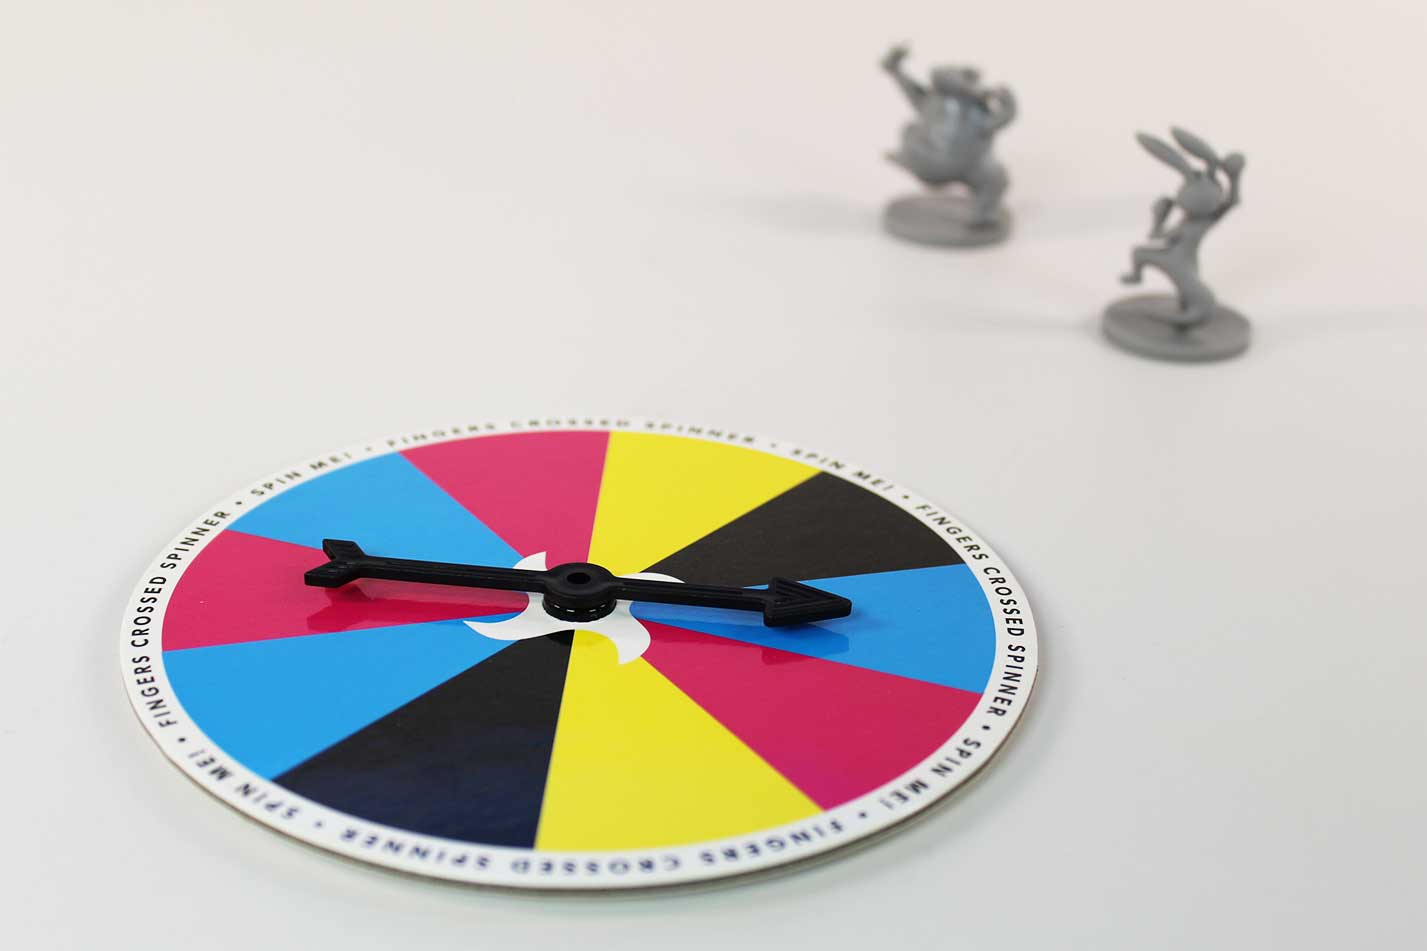 Fingers crossed spinner and miniatures